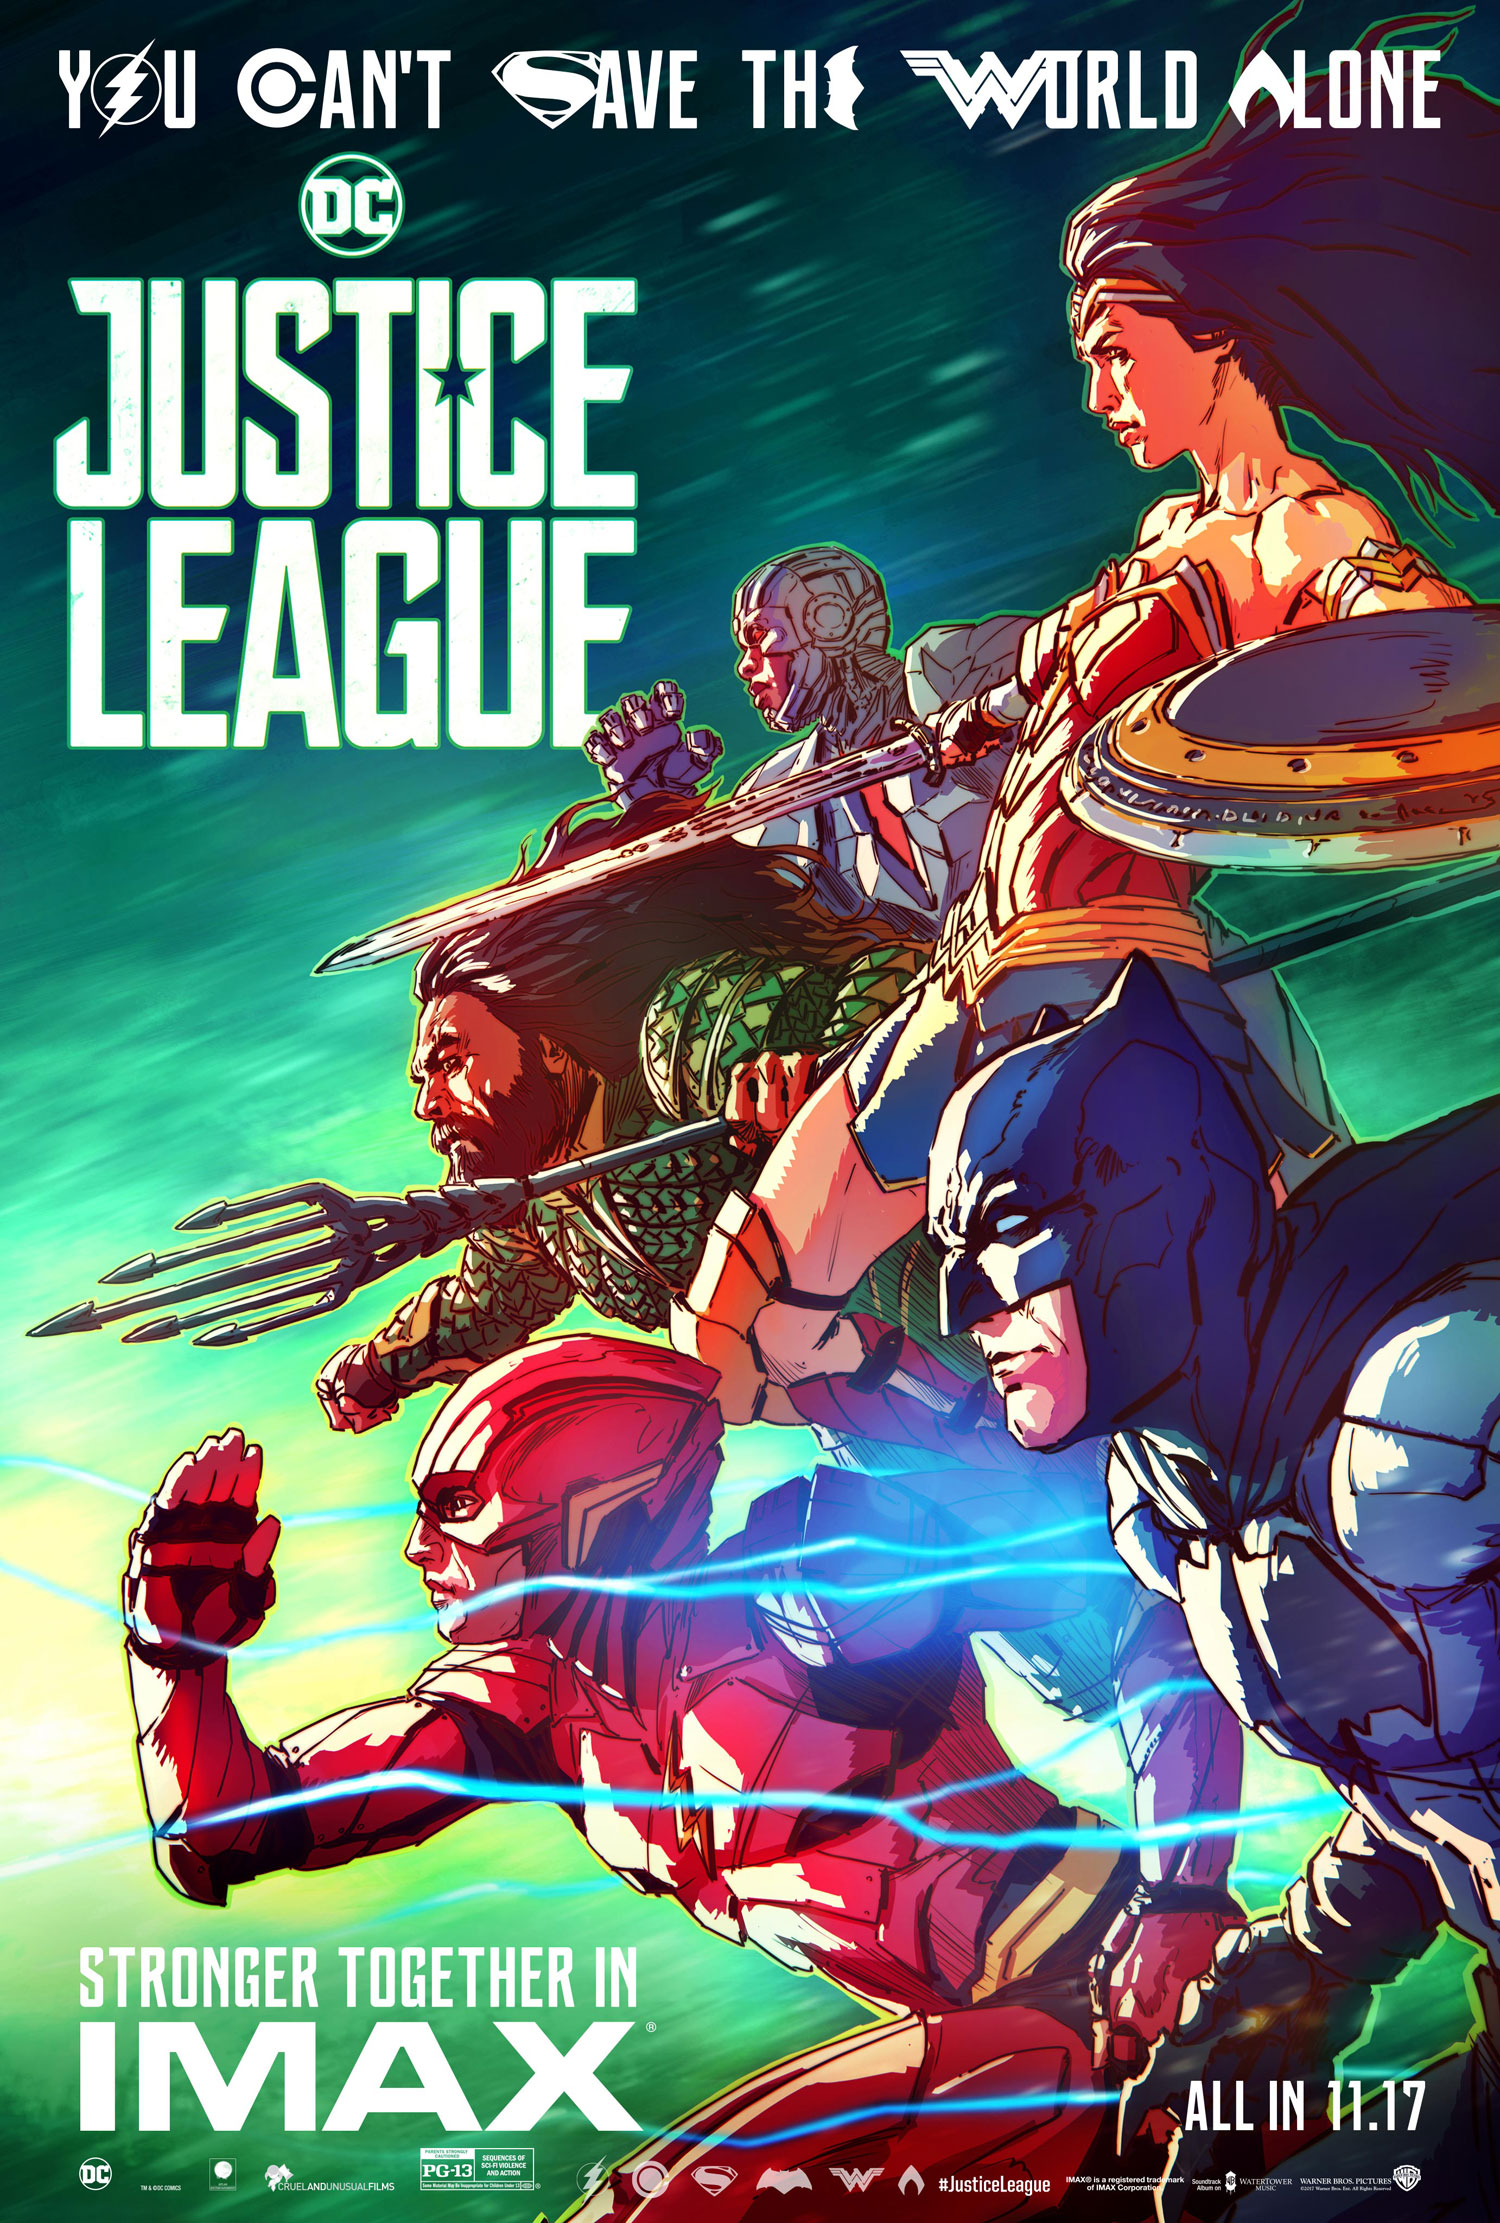 JusticeLeague-IMAX-poster-1.jpg?quality=85&strip=info&ssl=1&w=800